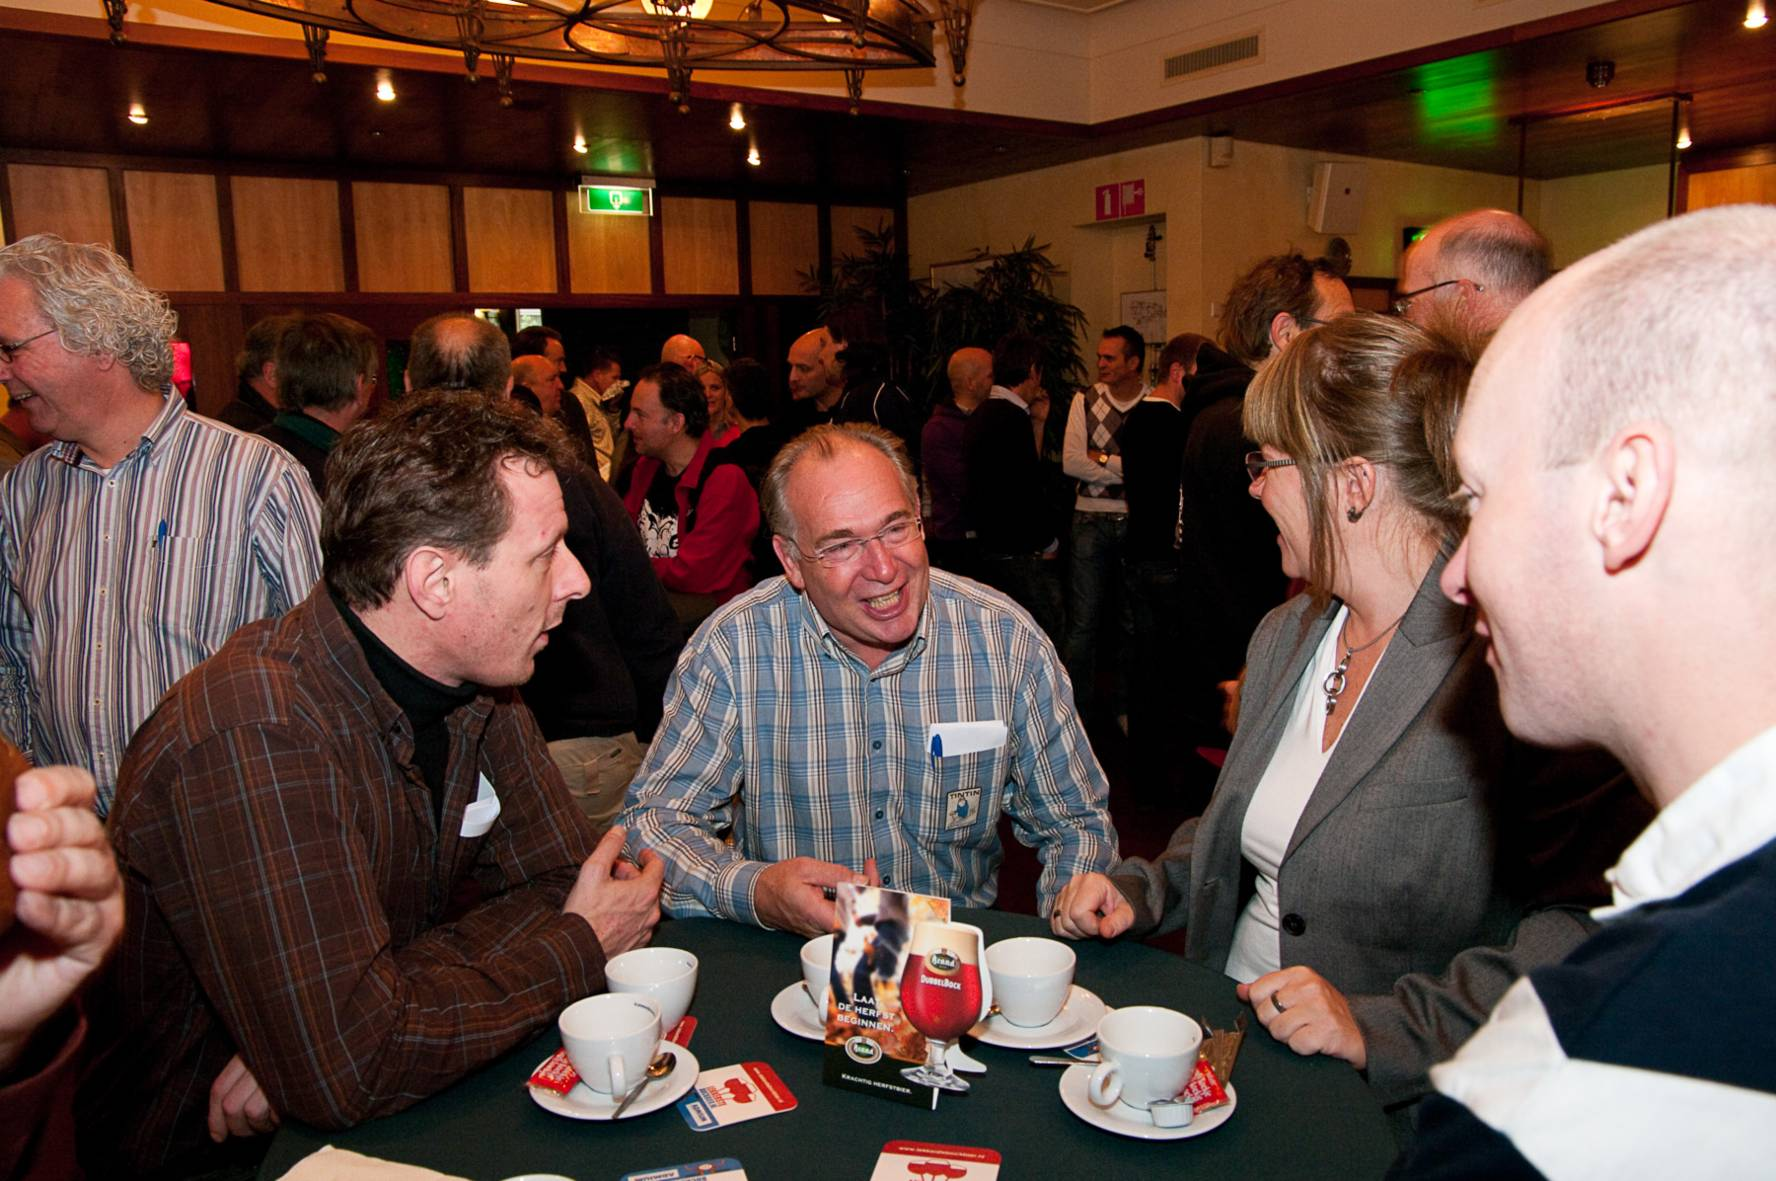 LekkersteBockBier2010 (10 of 172)